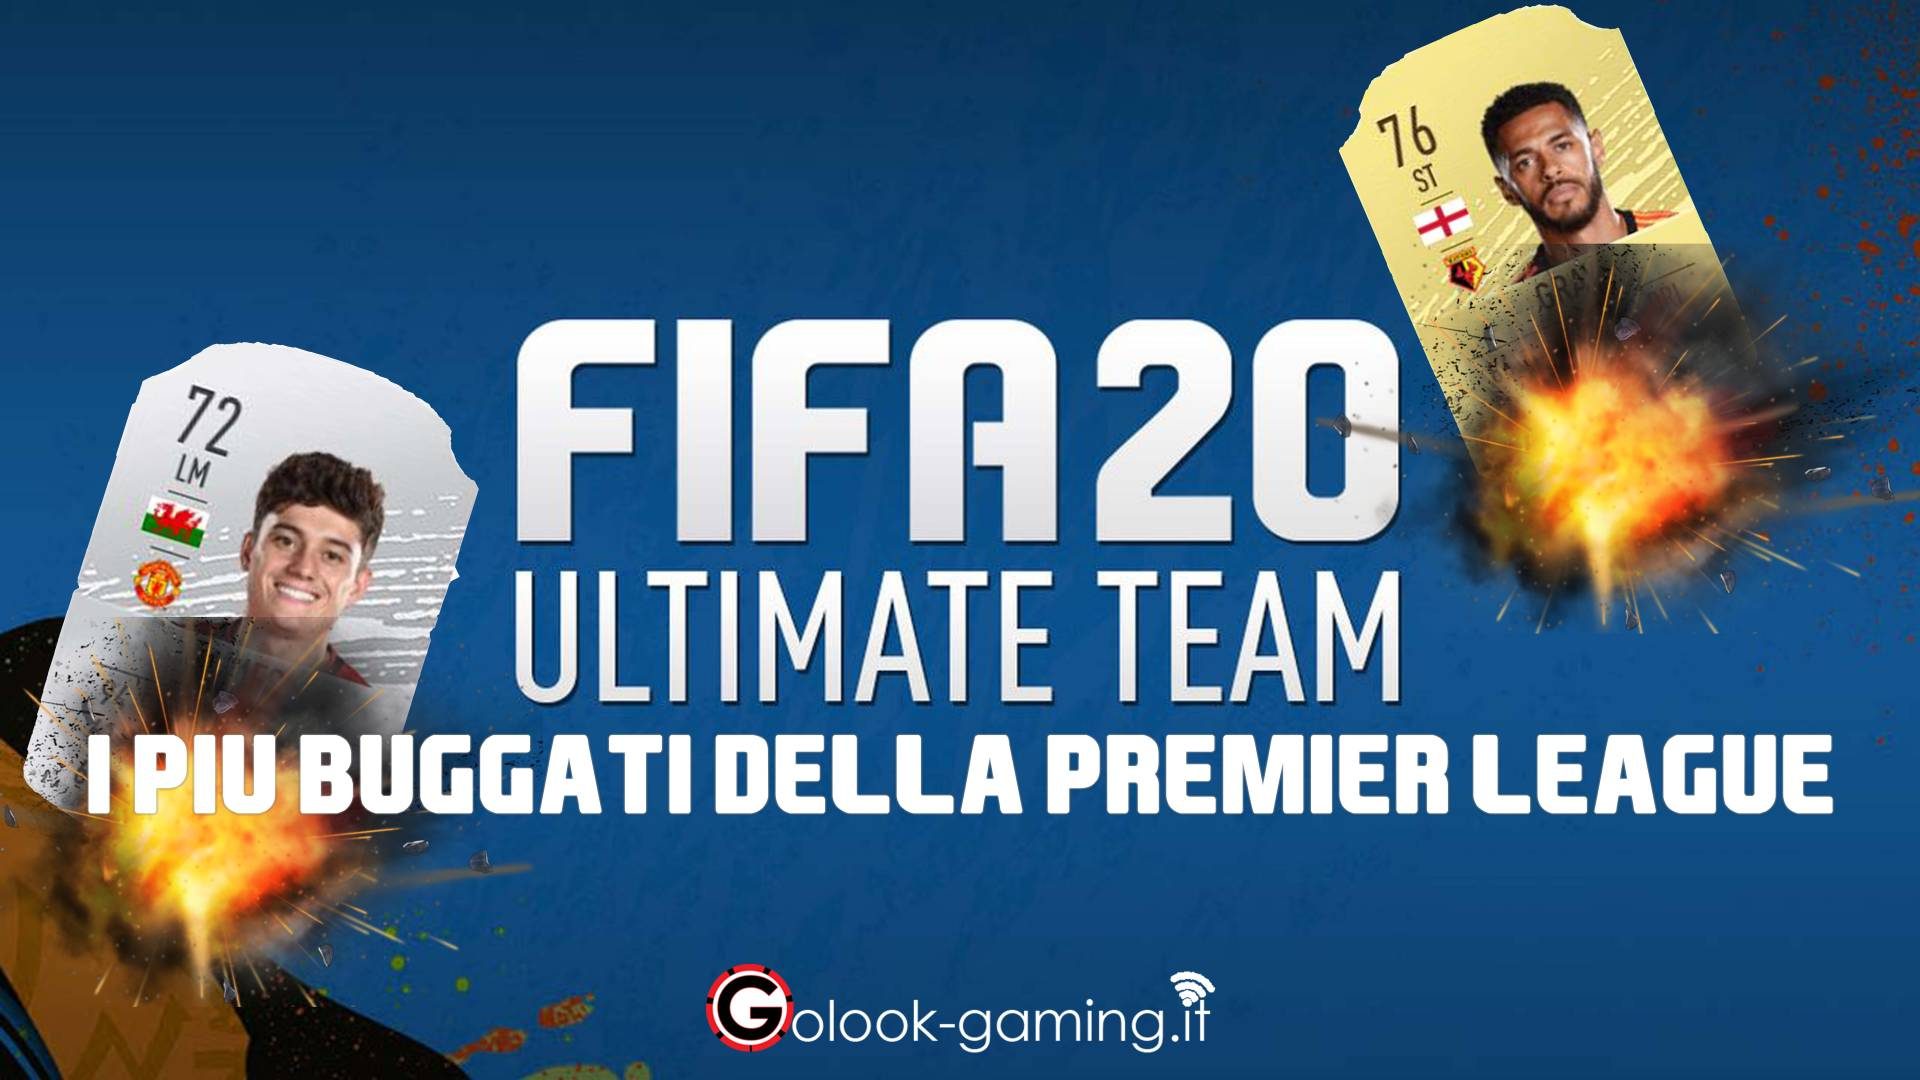 fifa 20 giocatori buggati premier league